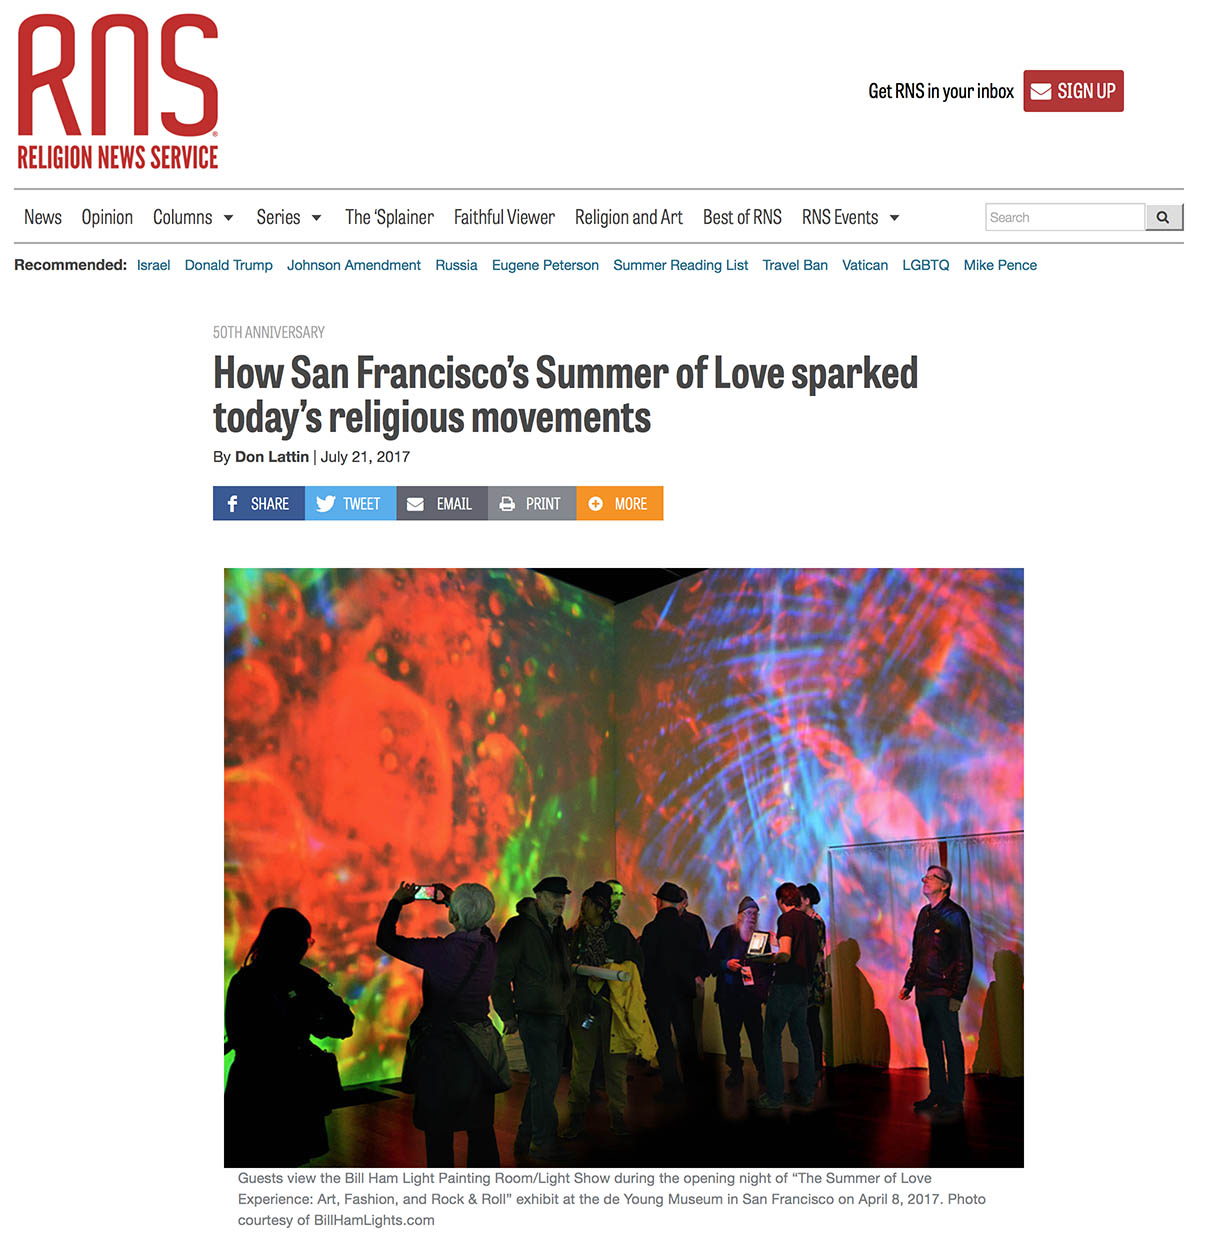 How San Francisco's Summer of Love sparked today's religious movements by Don Lattin